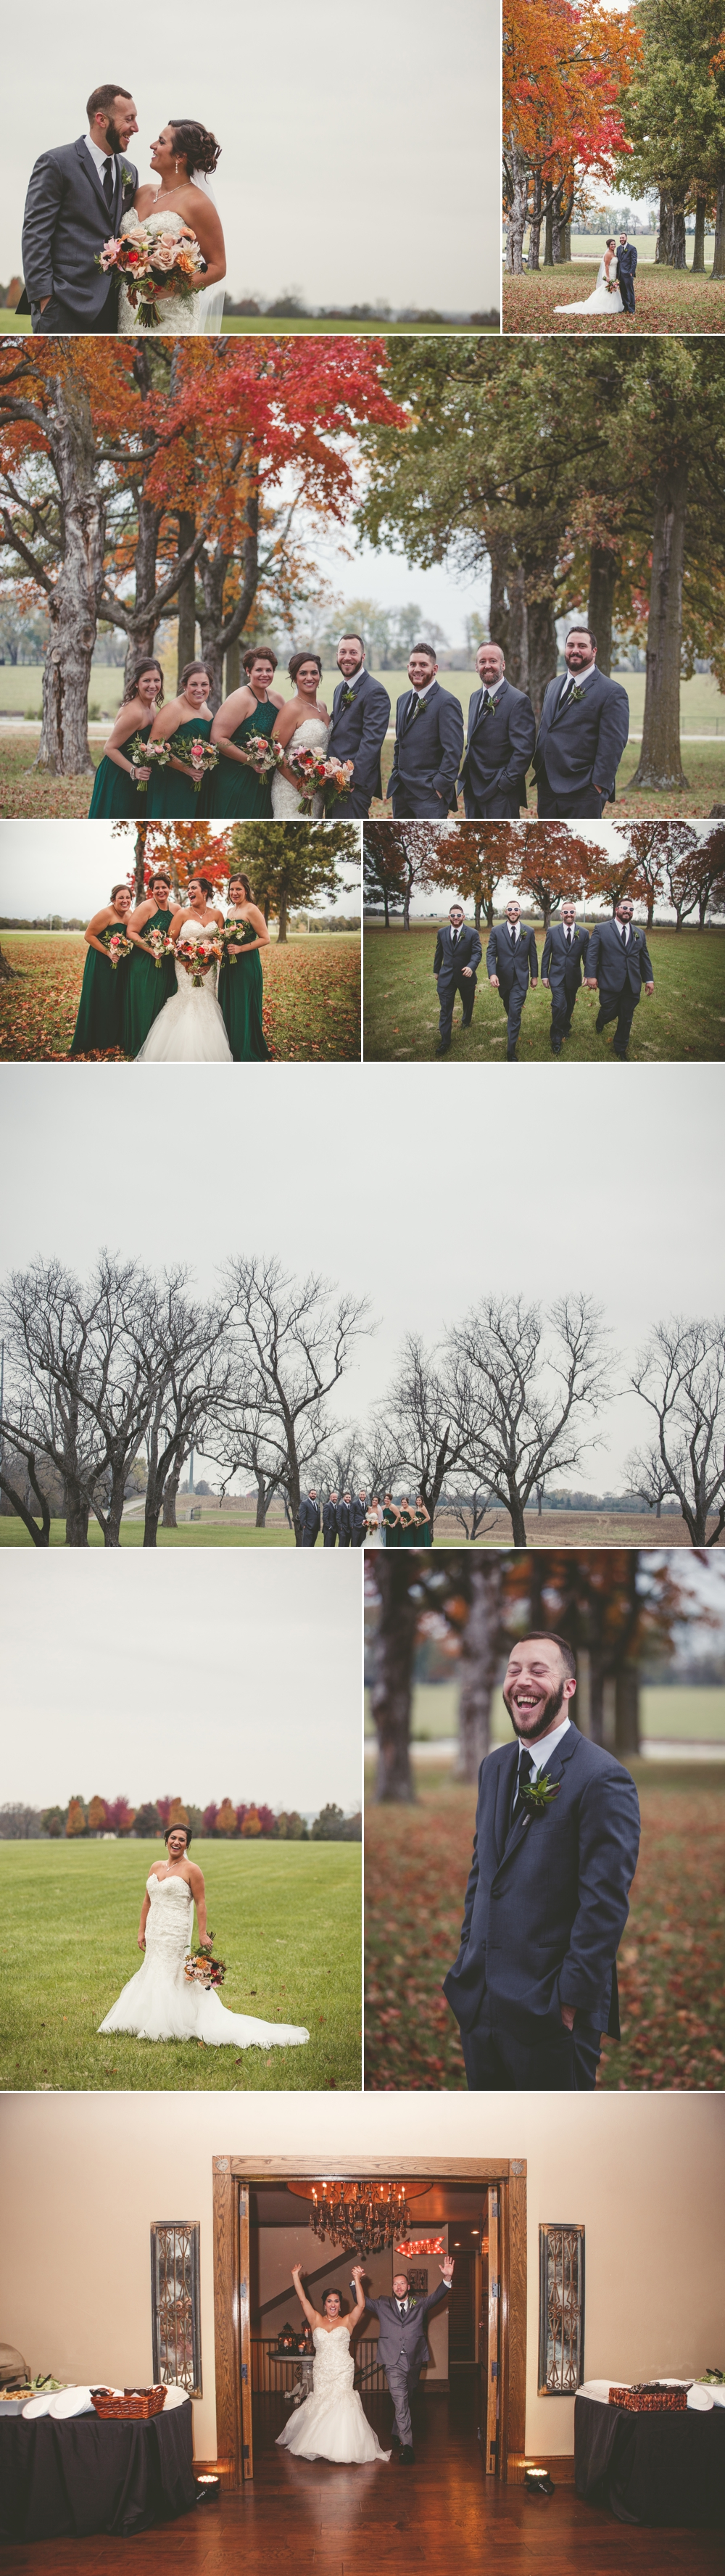 jason_domingues_photography_best_kansas_city_photographer_kc_weddings_aspen_room_stanley_0003.JPG